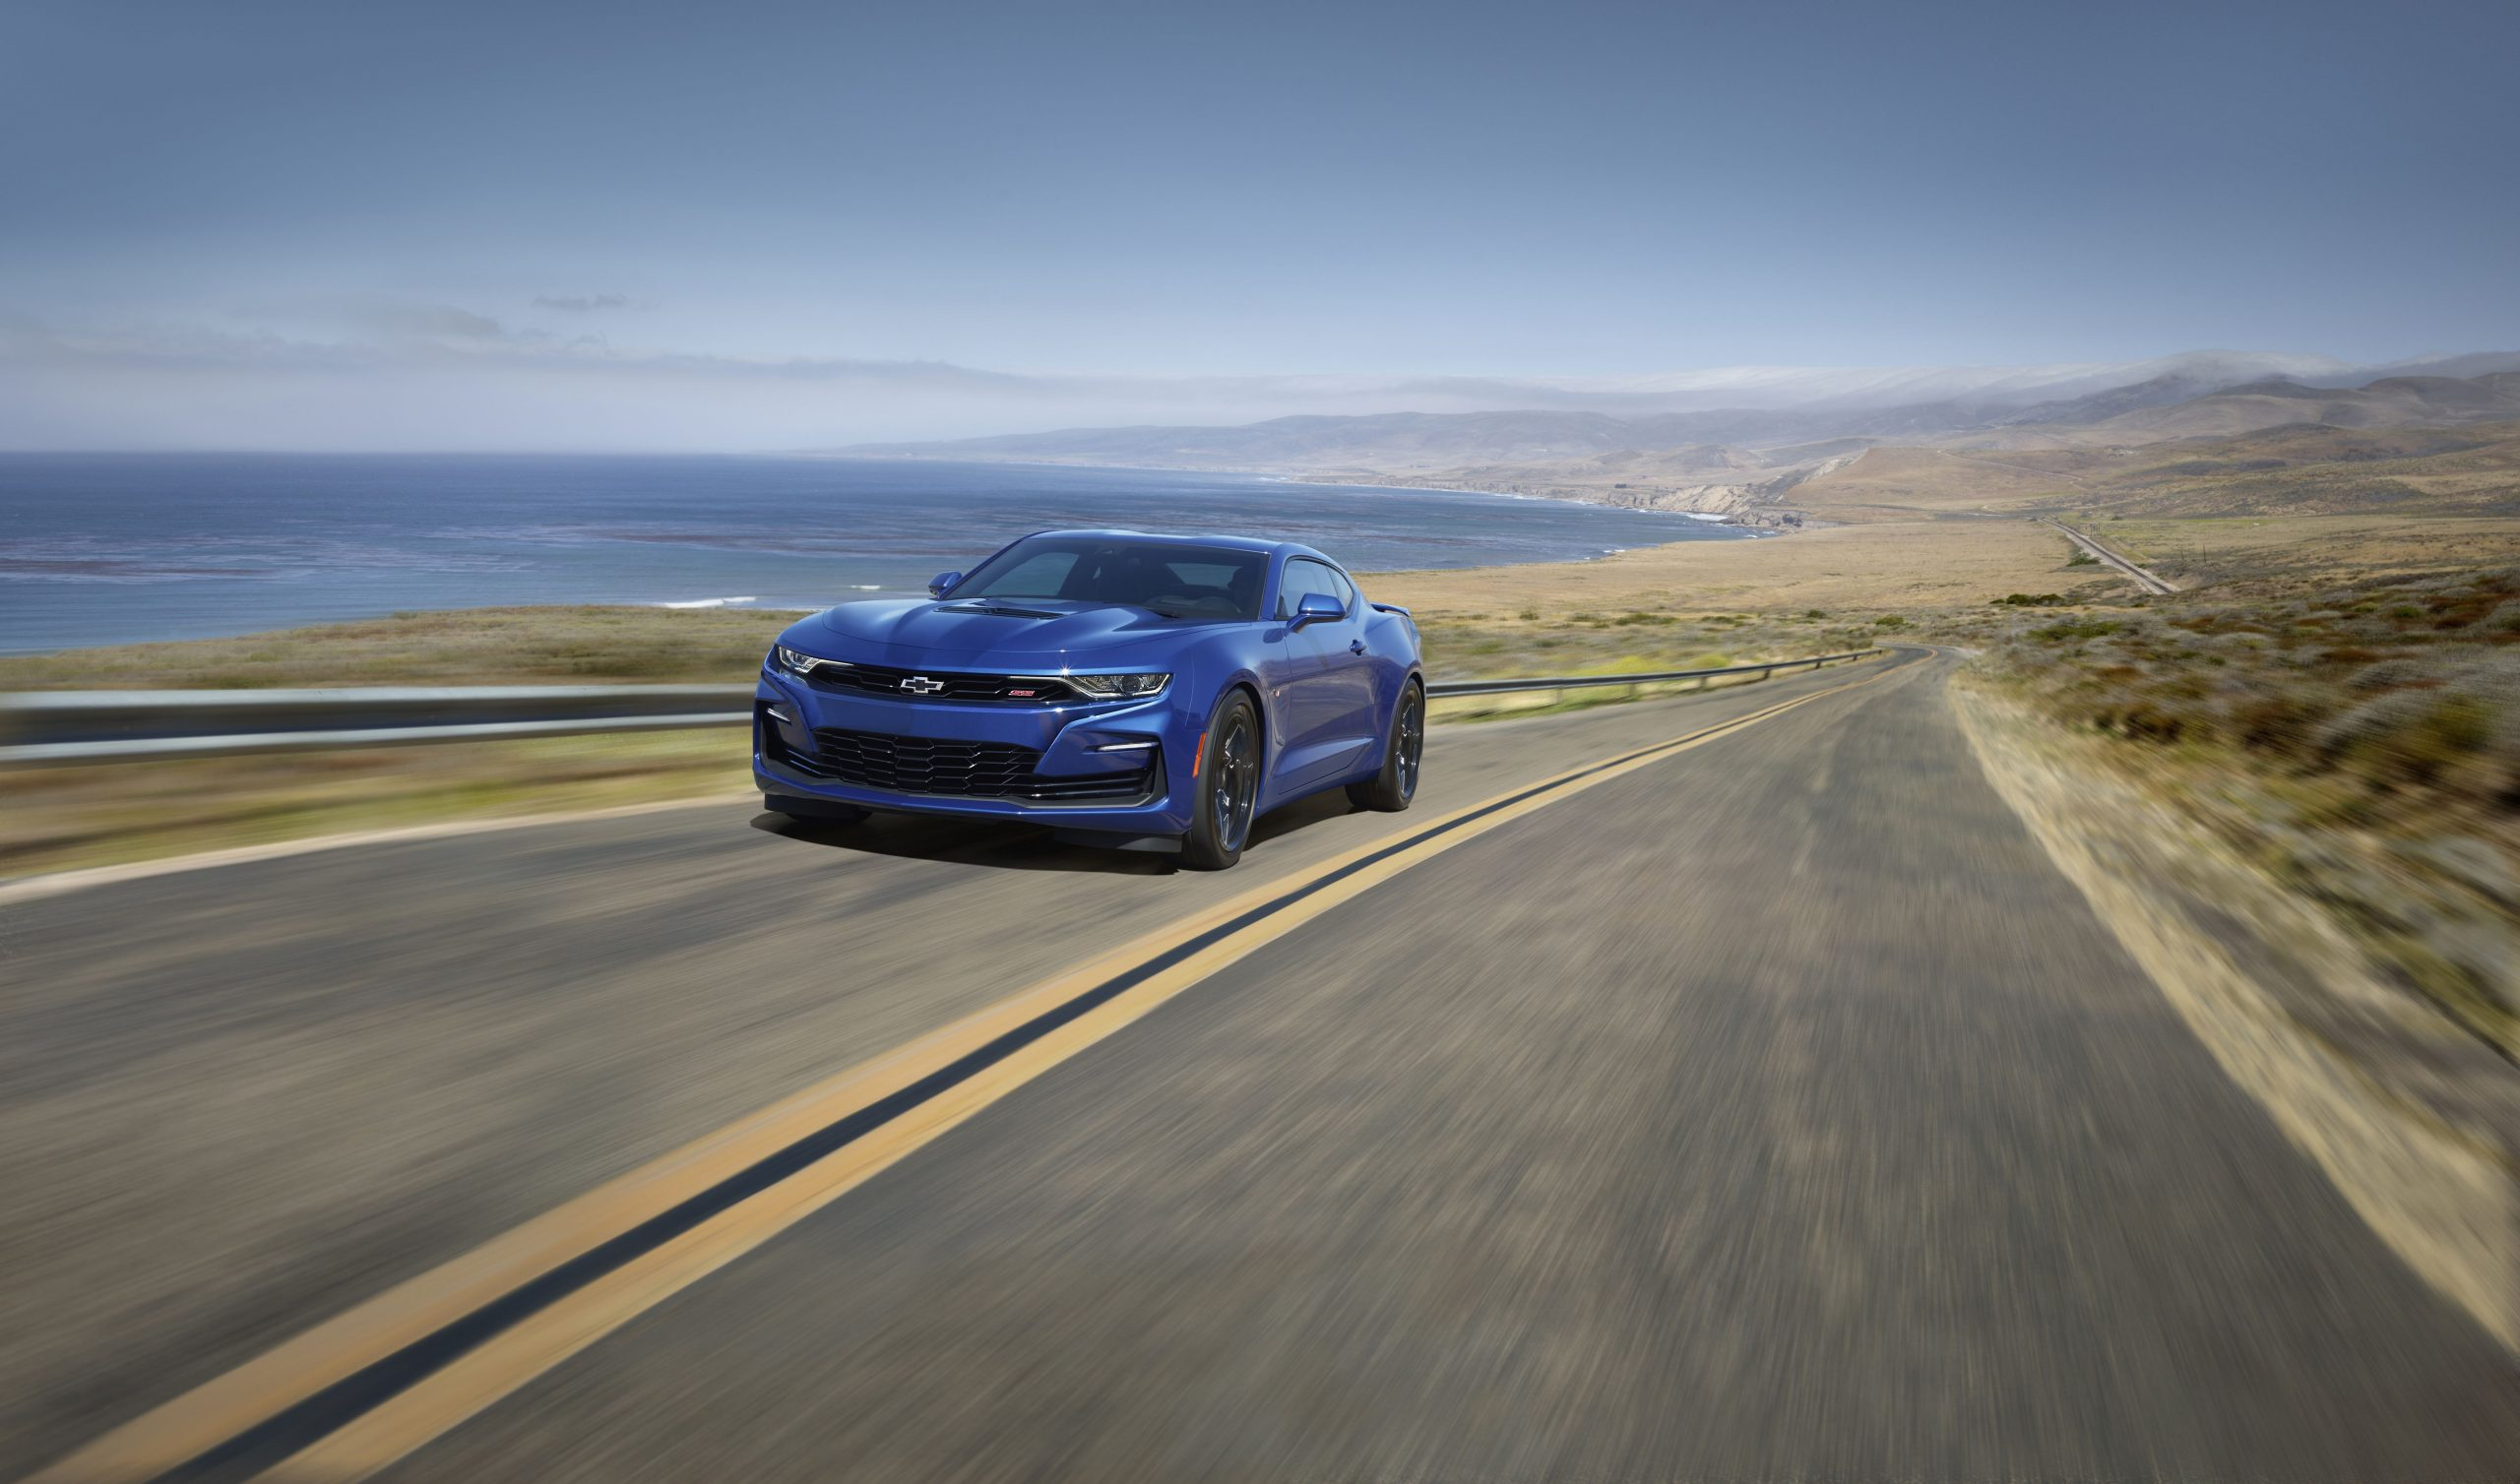 2020 Chevrolet Camaro Review, Pricing, And Specs 2021 Chevy Camaro Parts, Problems, Performance Parts